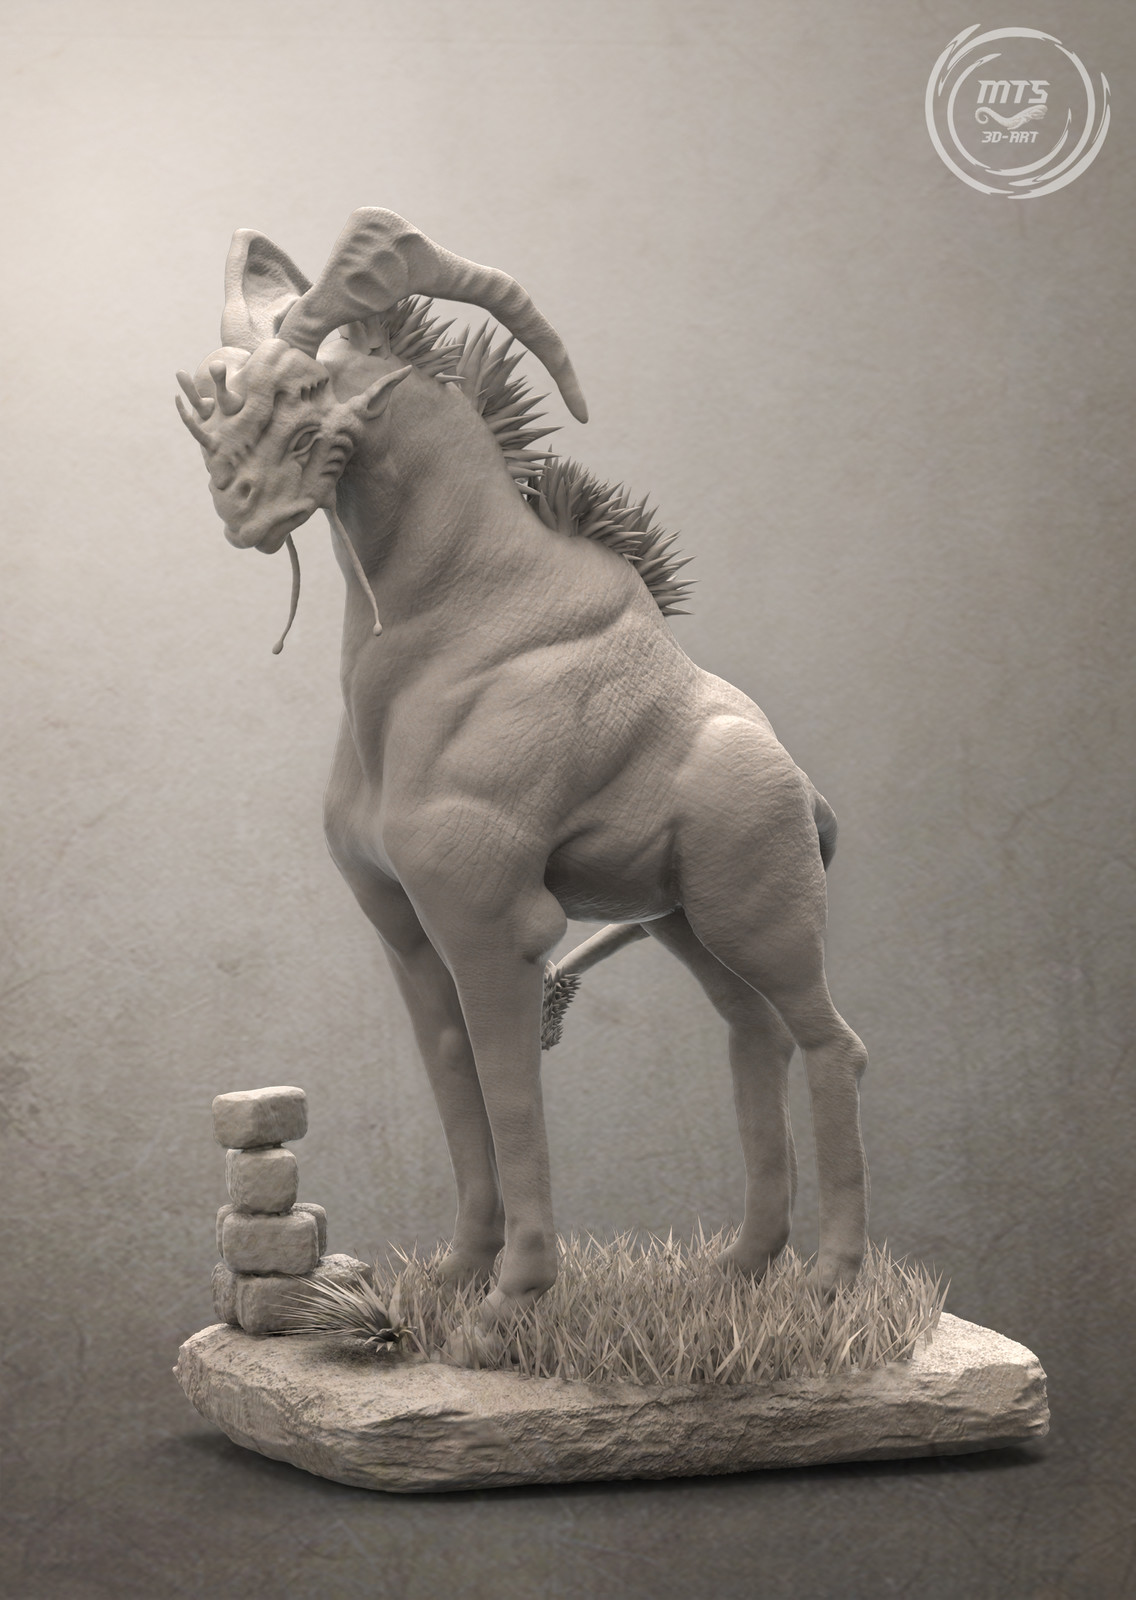 The Bahmbar - 3D Creature anatomy study